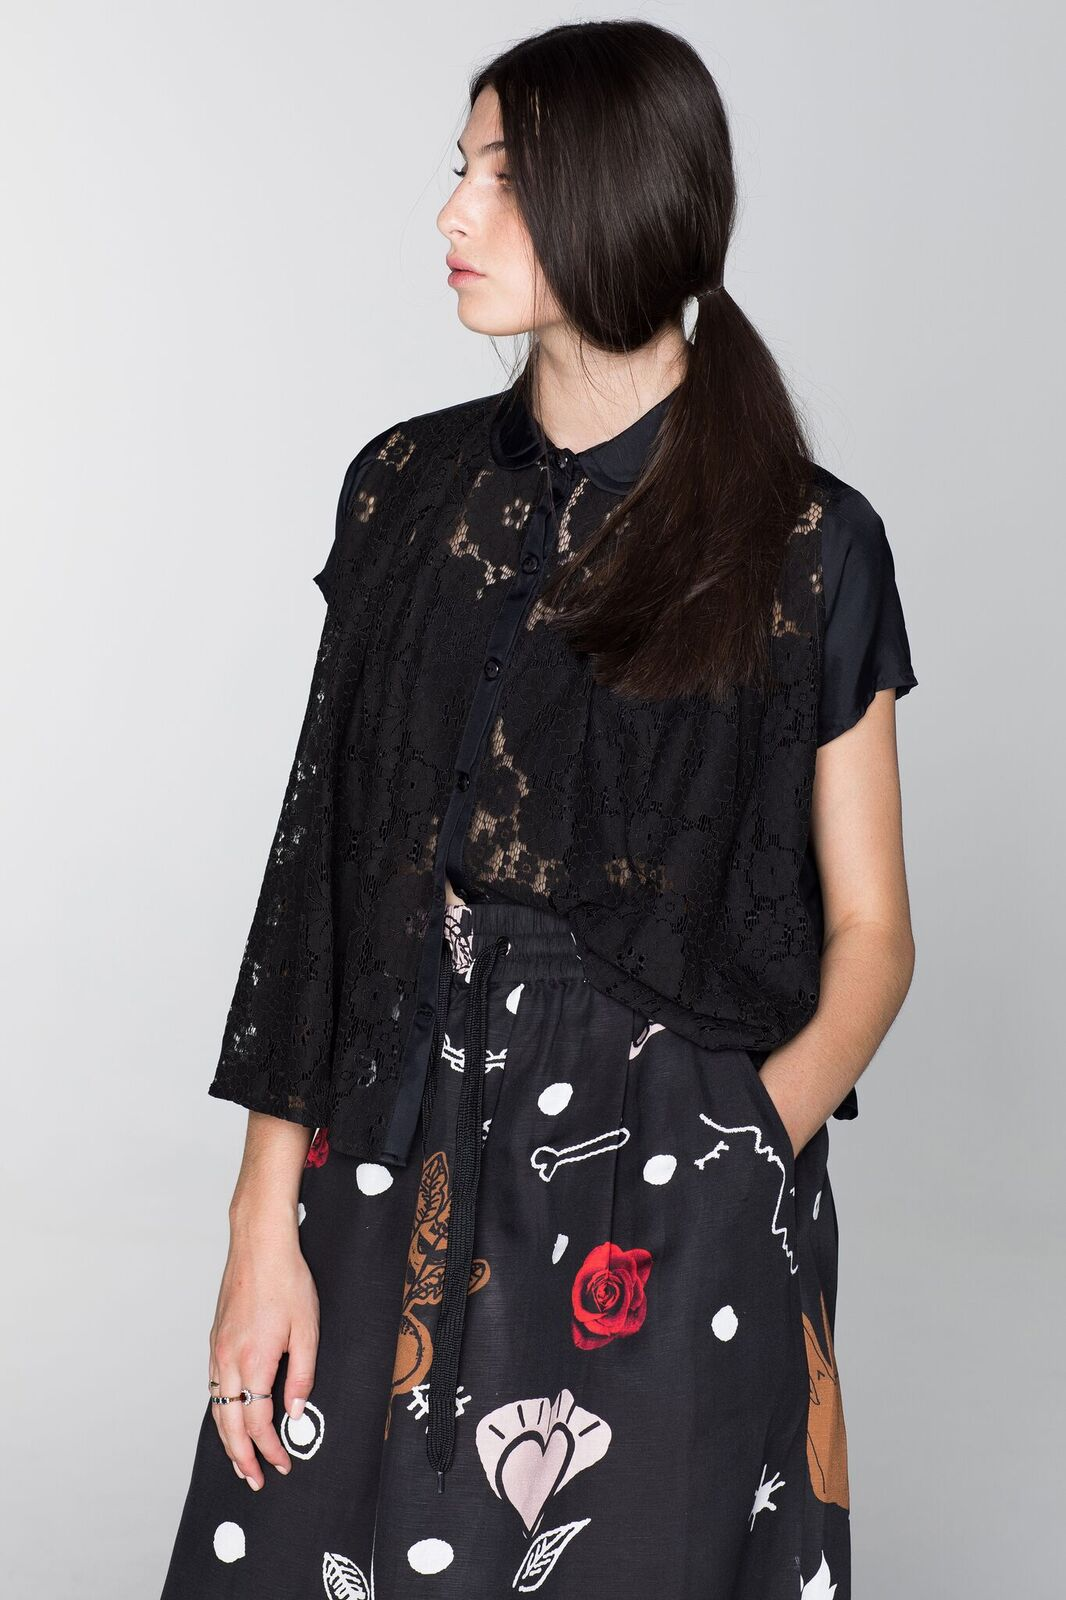 Salasai Extinction Blouse Lace Shirt Shop Salasai online or at our parnell shop Auckland stockists